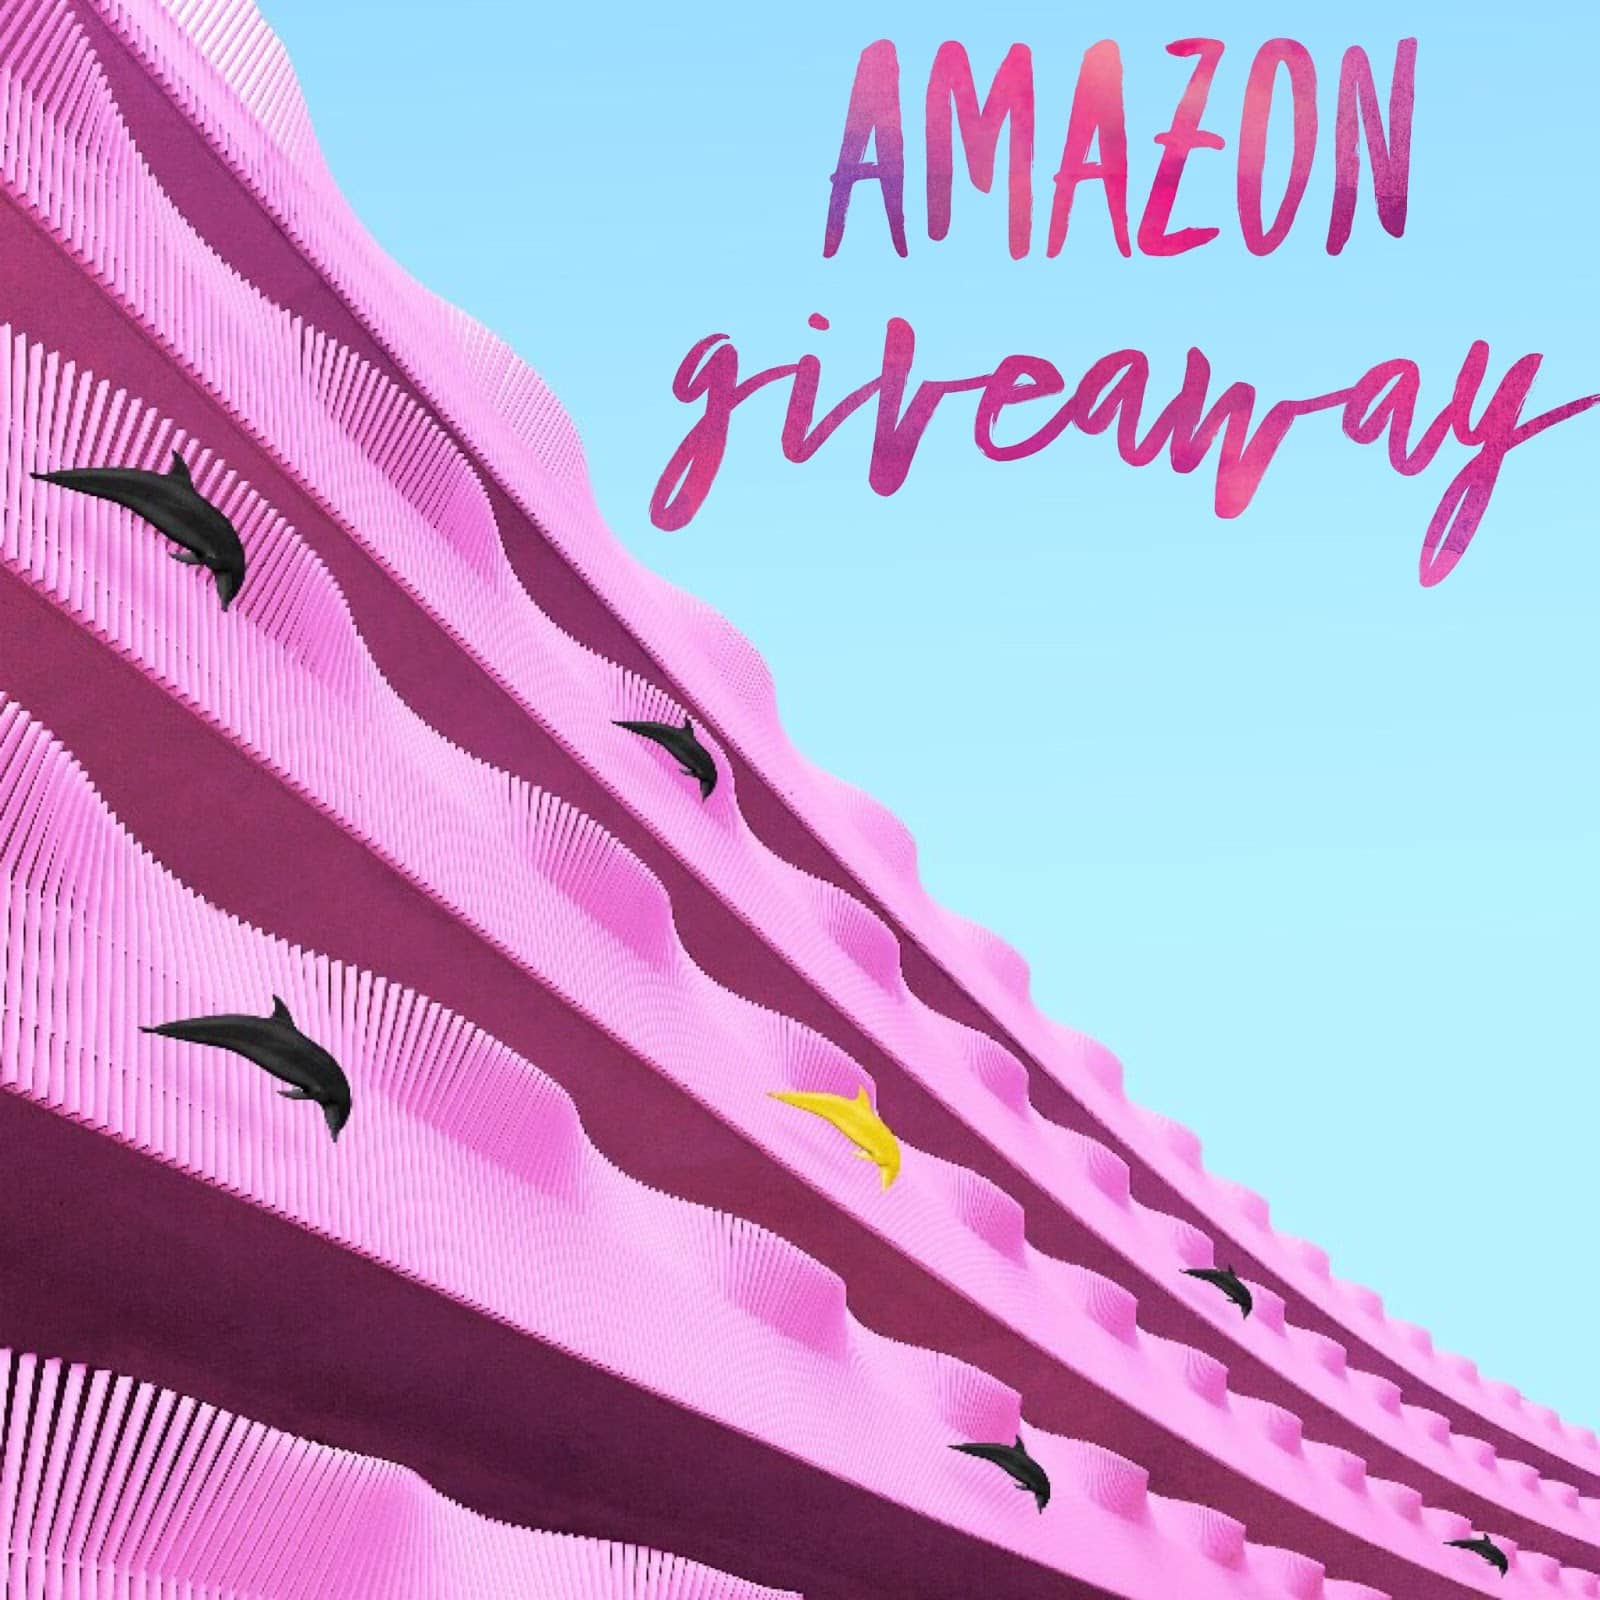 April Amazon Giveaway ends May 23rd, 2018